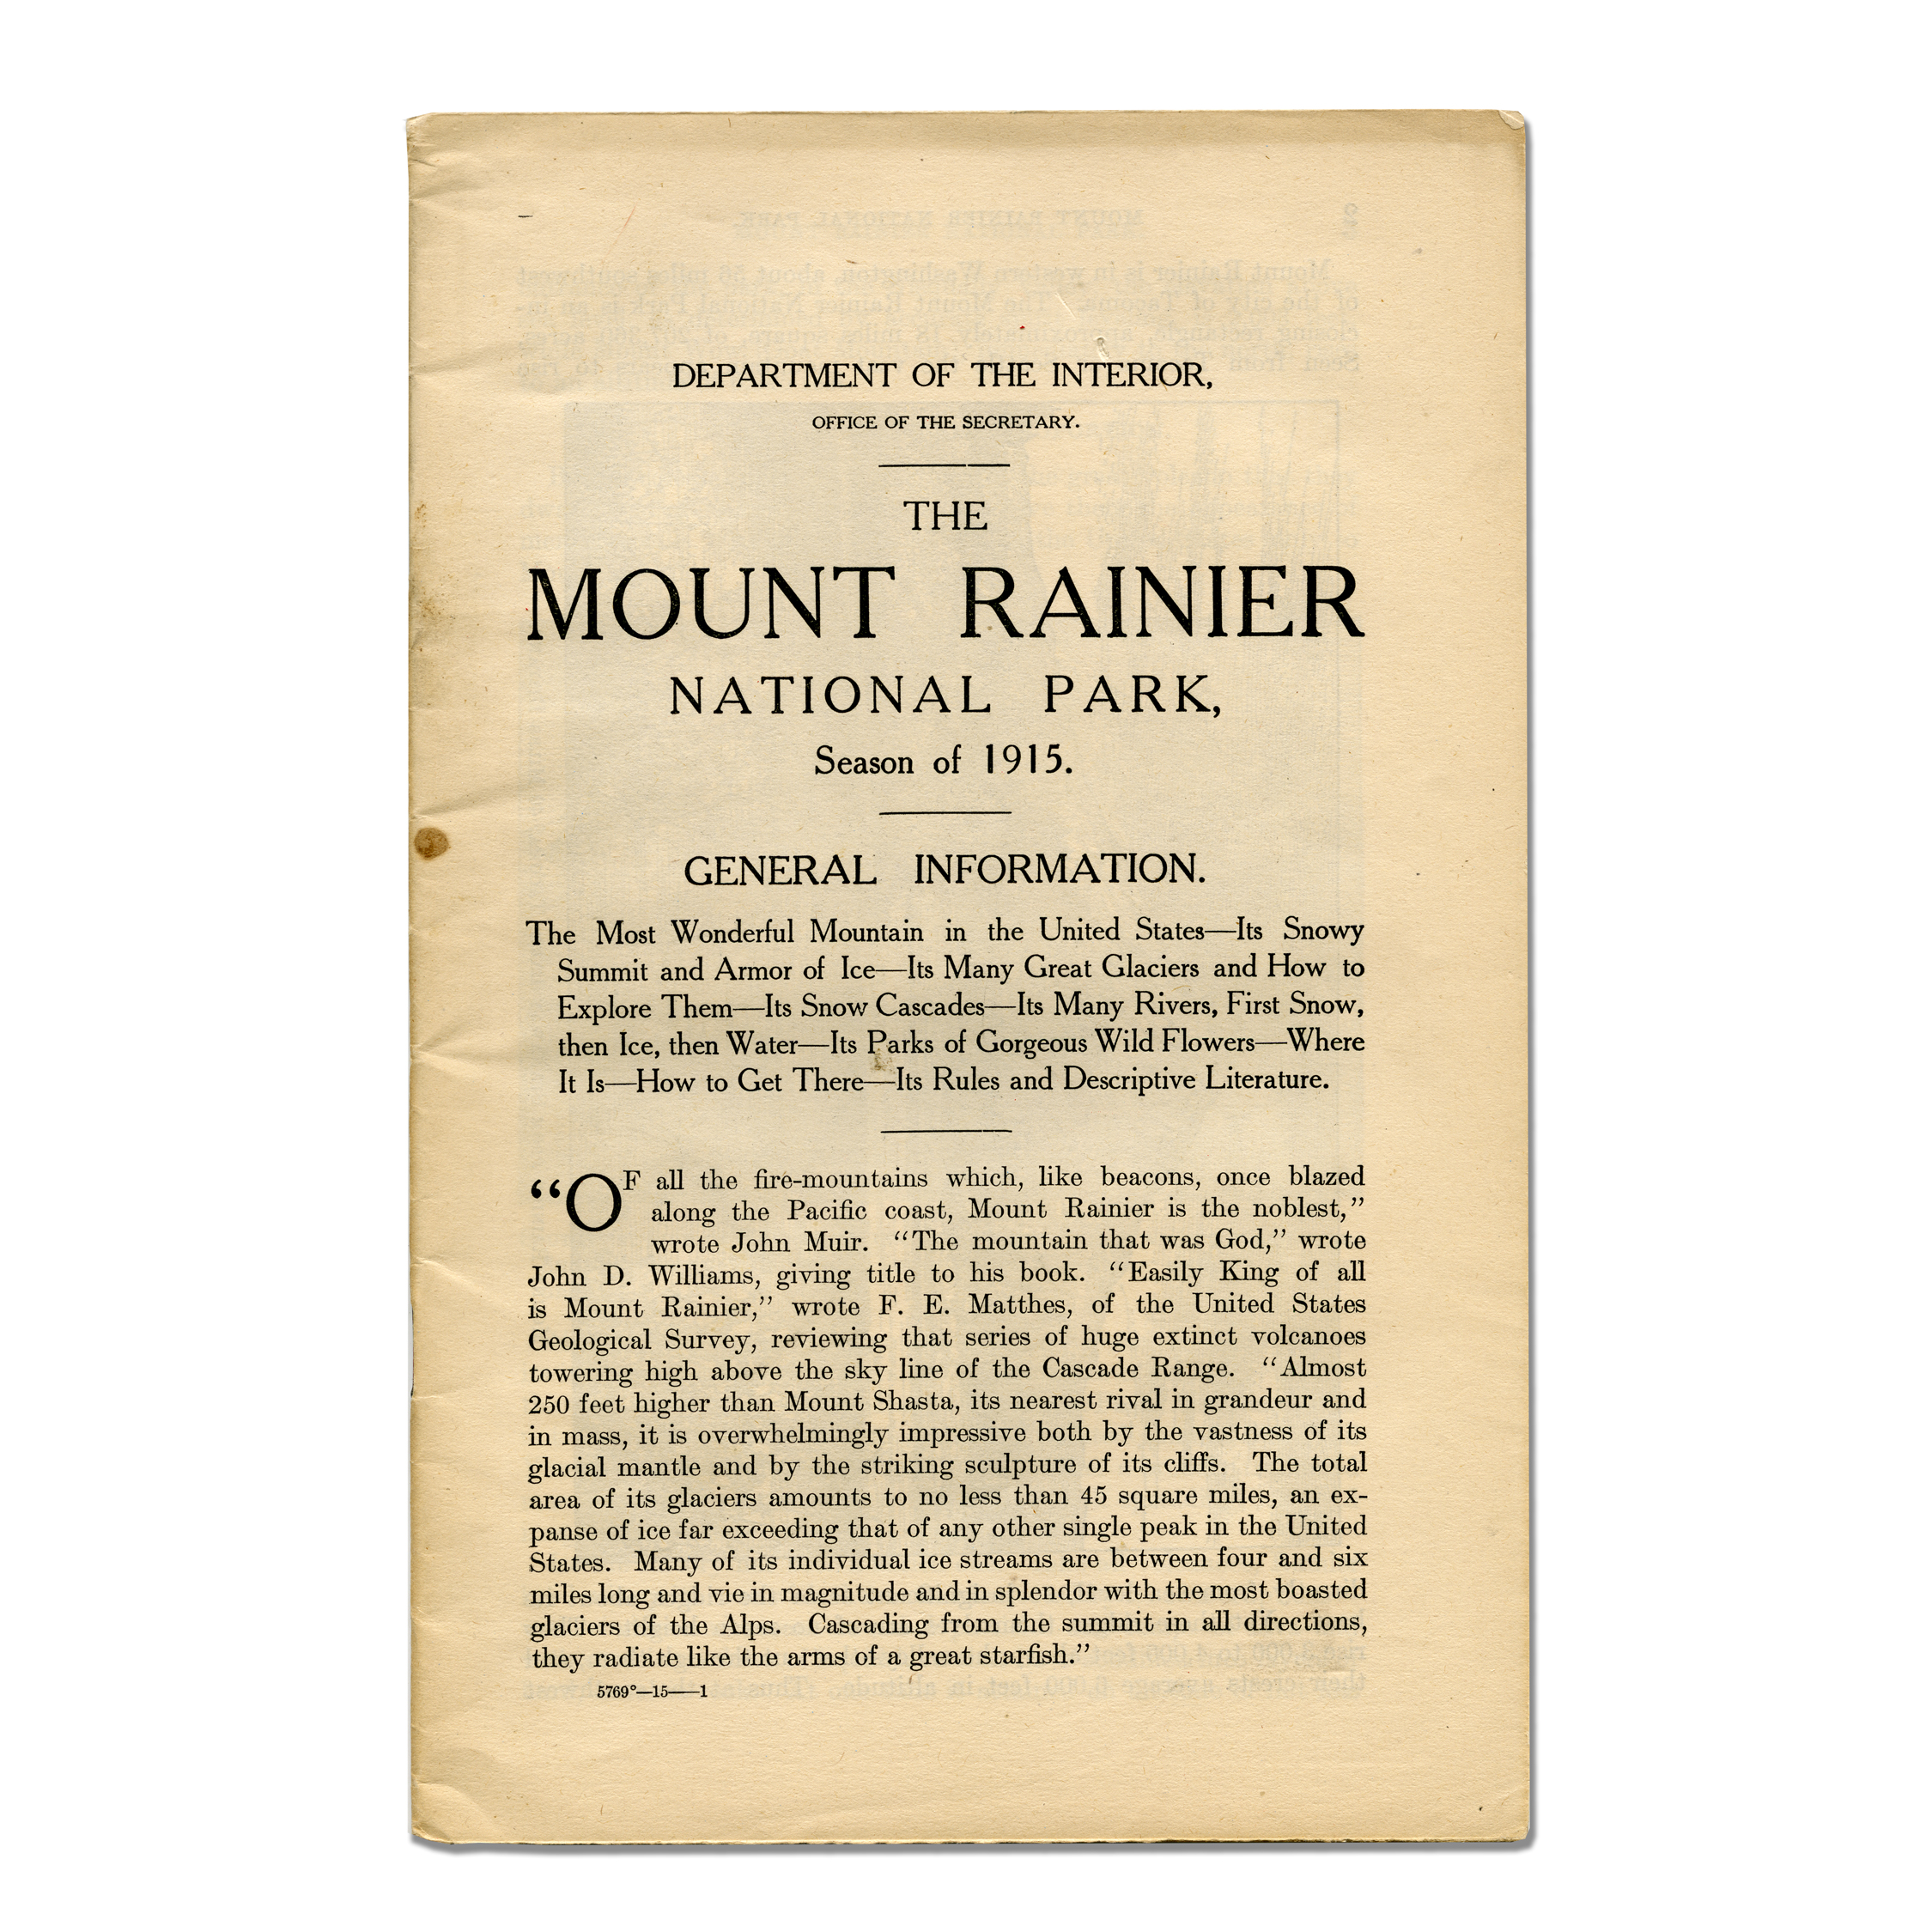 1915_mount_rainier_national_park_brochure.jpg